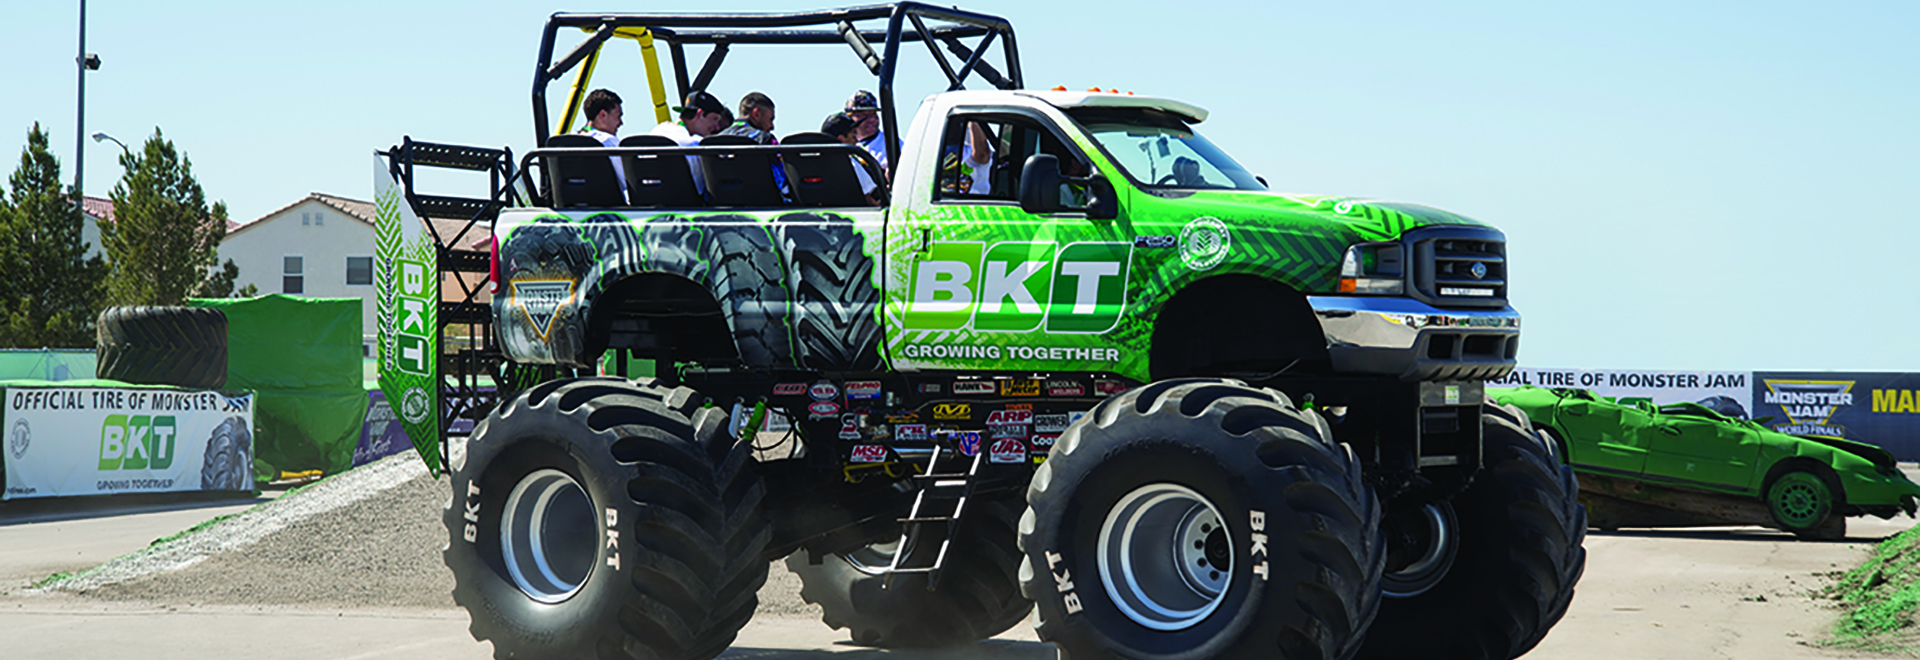 experience the ride truck monster jam